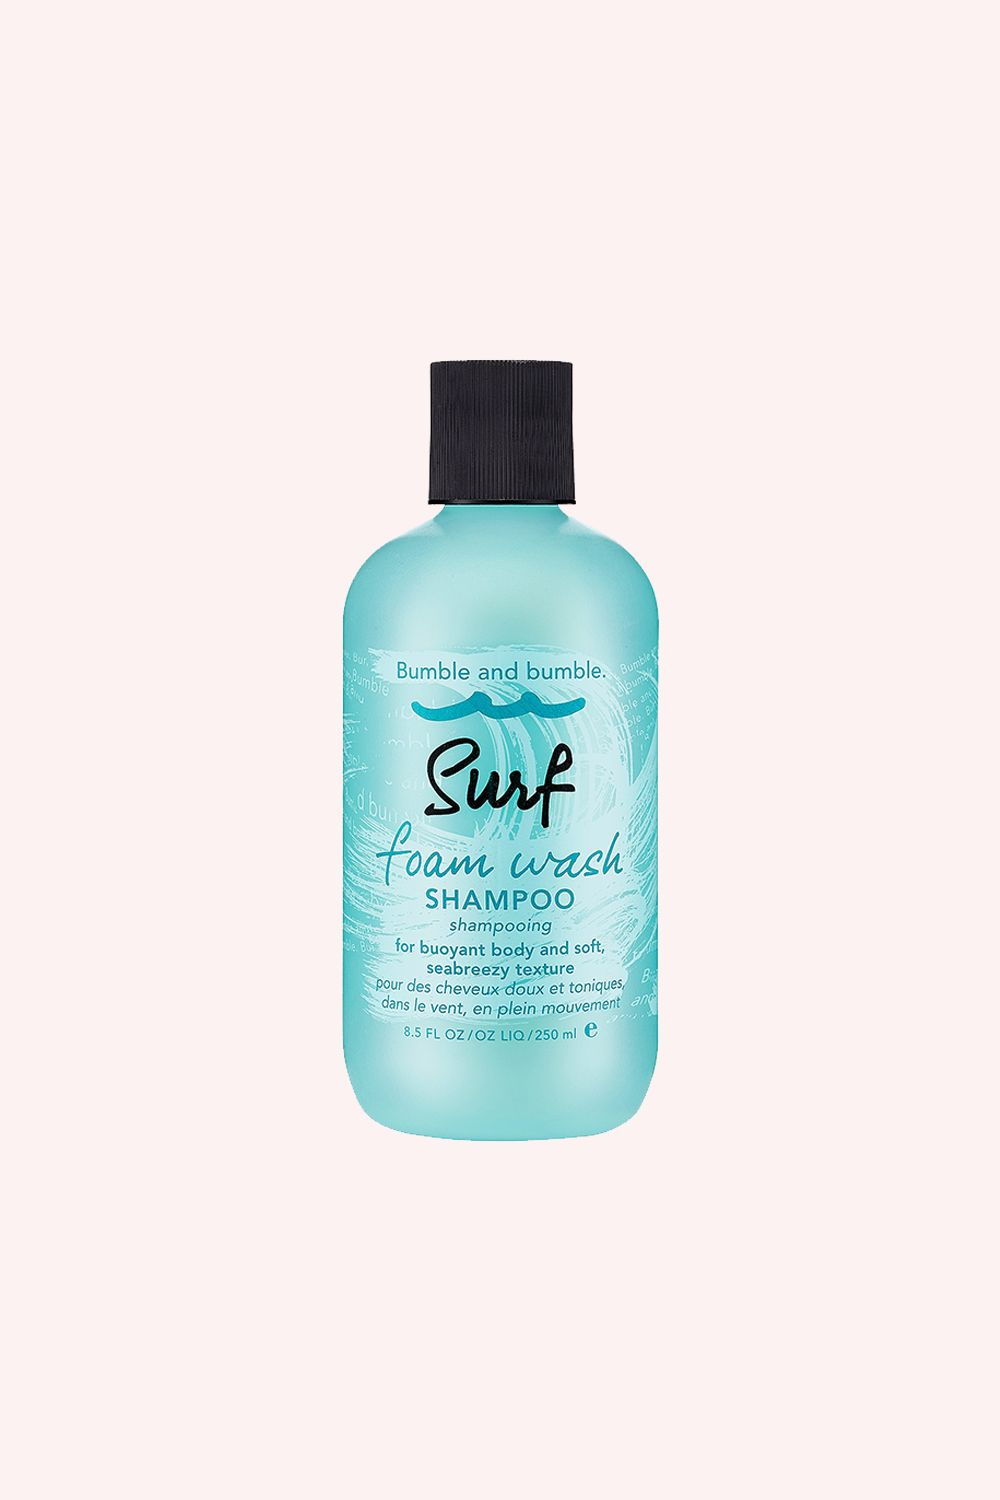 "<p>Congrats! You basically have the wavy hair of beach-lovers' dreams. At least, you could, if you use the correct products in the shower, like a texture-enhancing shampoo that dissolves buildup and oil while amping up fine, flat waves.</p><p><i data-redactor-tag=""i"">Bumble and Bumble Surf Foam Wash Shampoo</i>, $25</p><p><strong data-redactor-tag=""strong"">BUY IT: <a href=""http://www.sephora.com/surf-foam-wash-shampoo-P378842?"">sephora.com</a>.&nbsp&#x3B;</strong></p>"